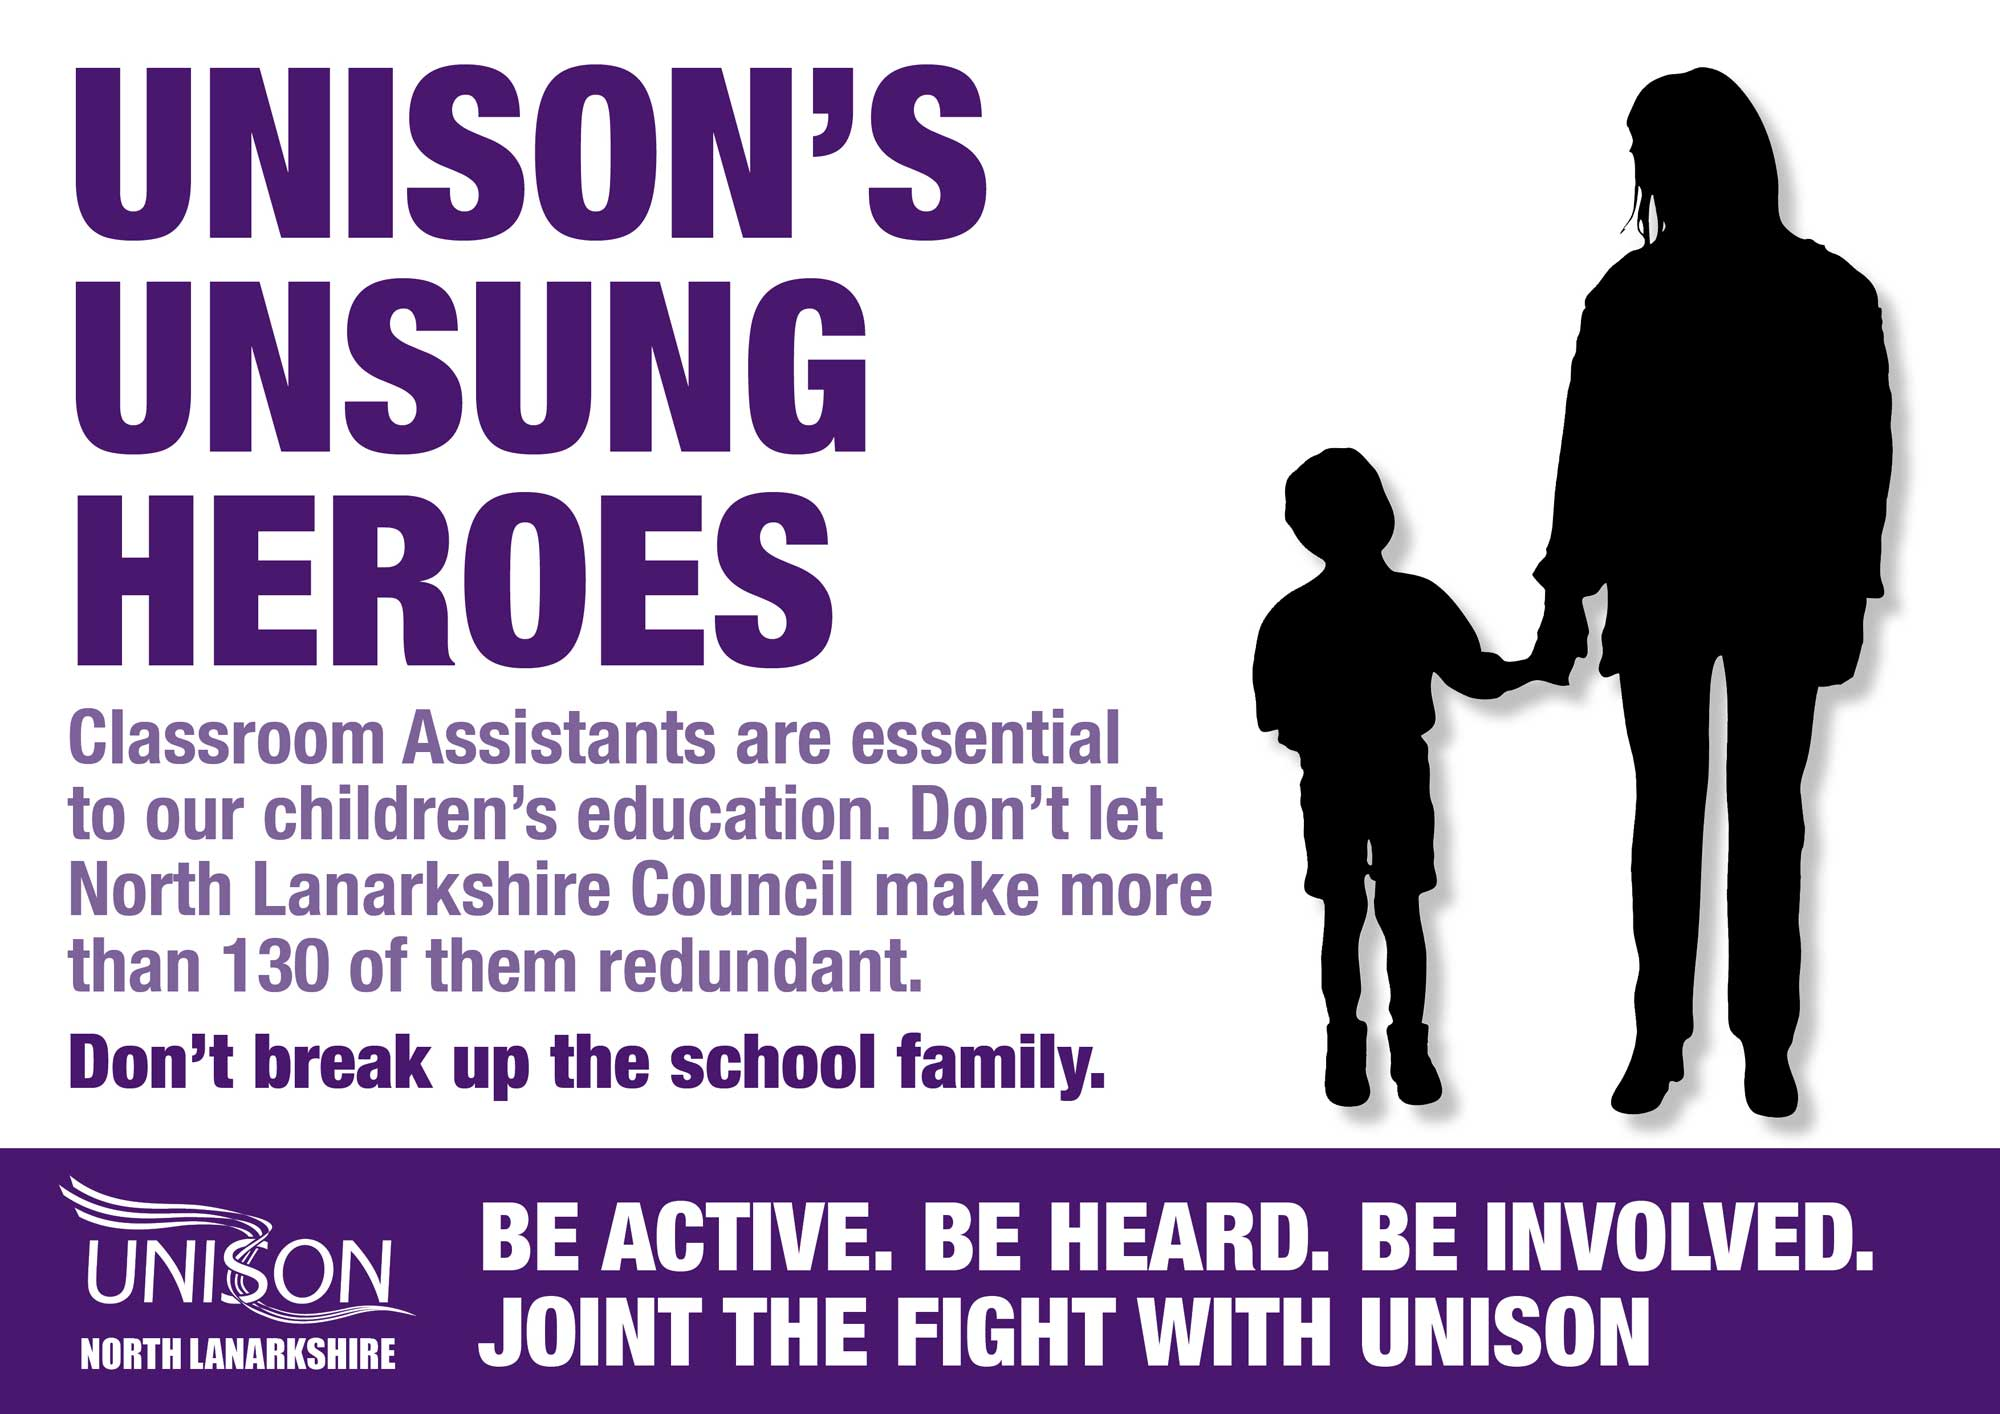 Join the Unsung Heroes in Unison's campaign against NLC Cuts